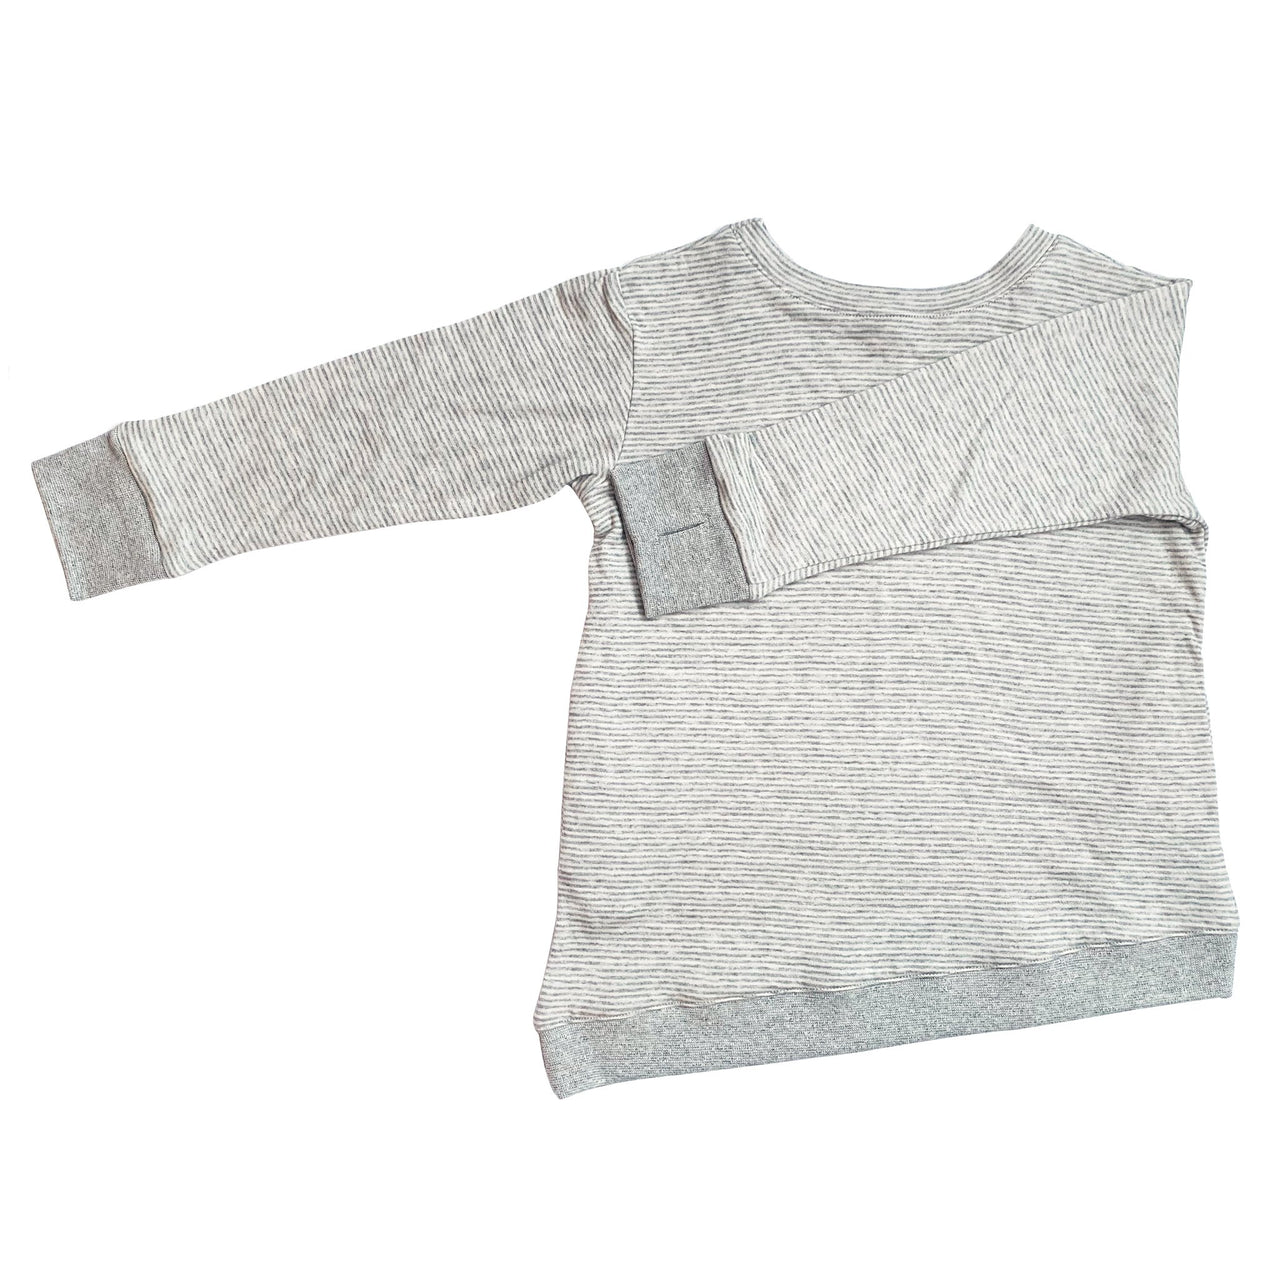 Kids & Babies - Asymmetric Pullover - Grey Skinny Stripes - Youth